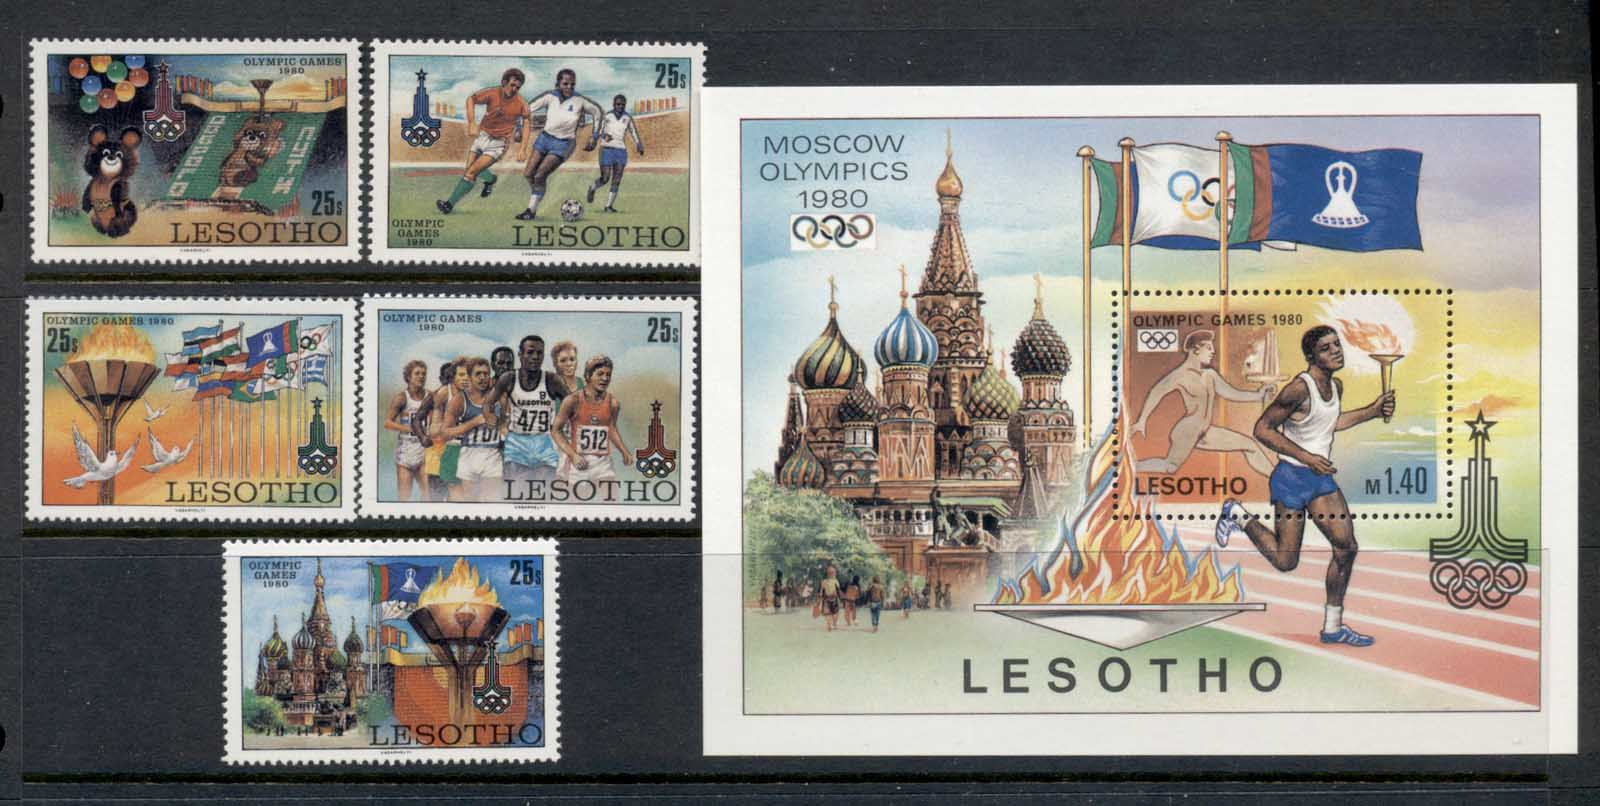 Lesotho 1980 Summer Olympics Moscow + MS MUH